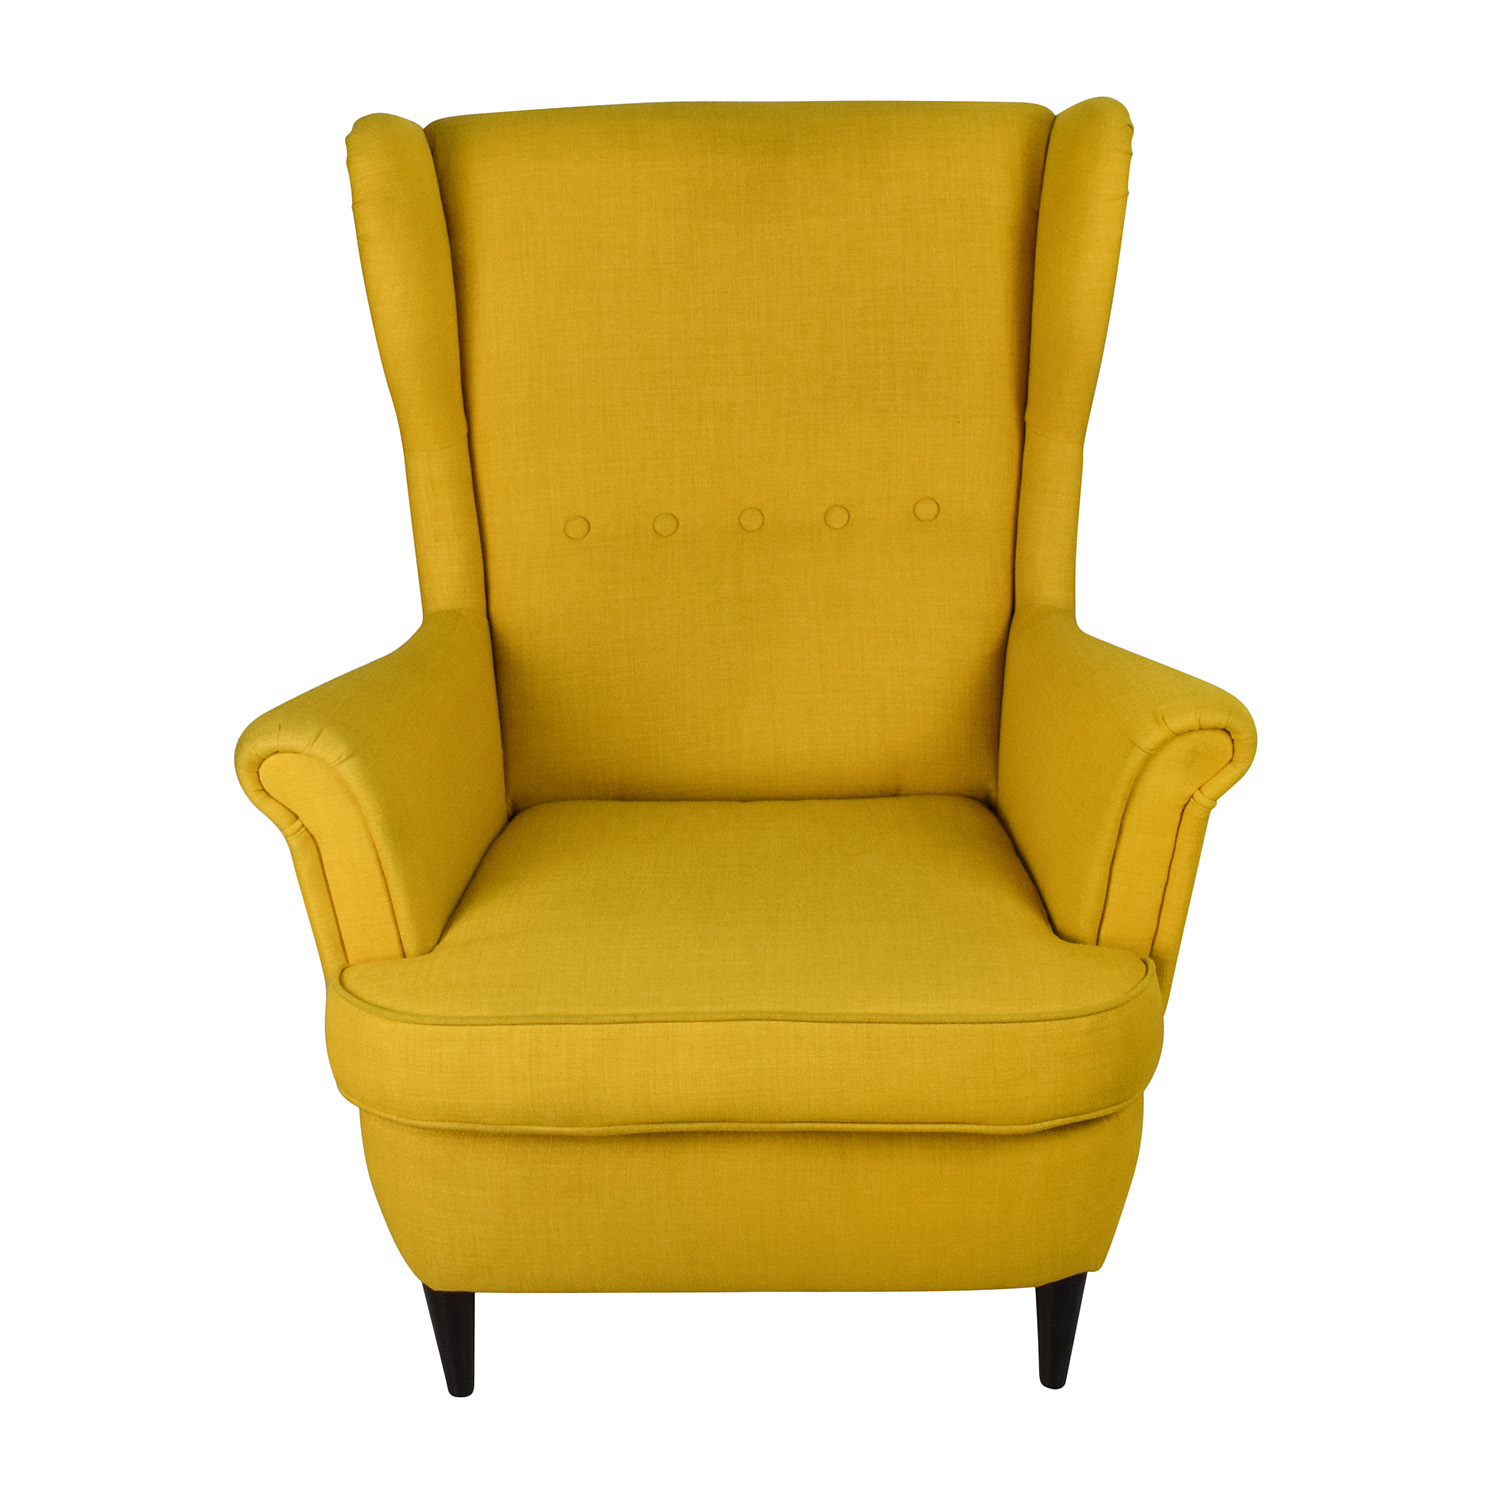 46 Off Ikea Strandmon Accent Armchair Chairs